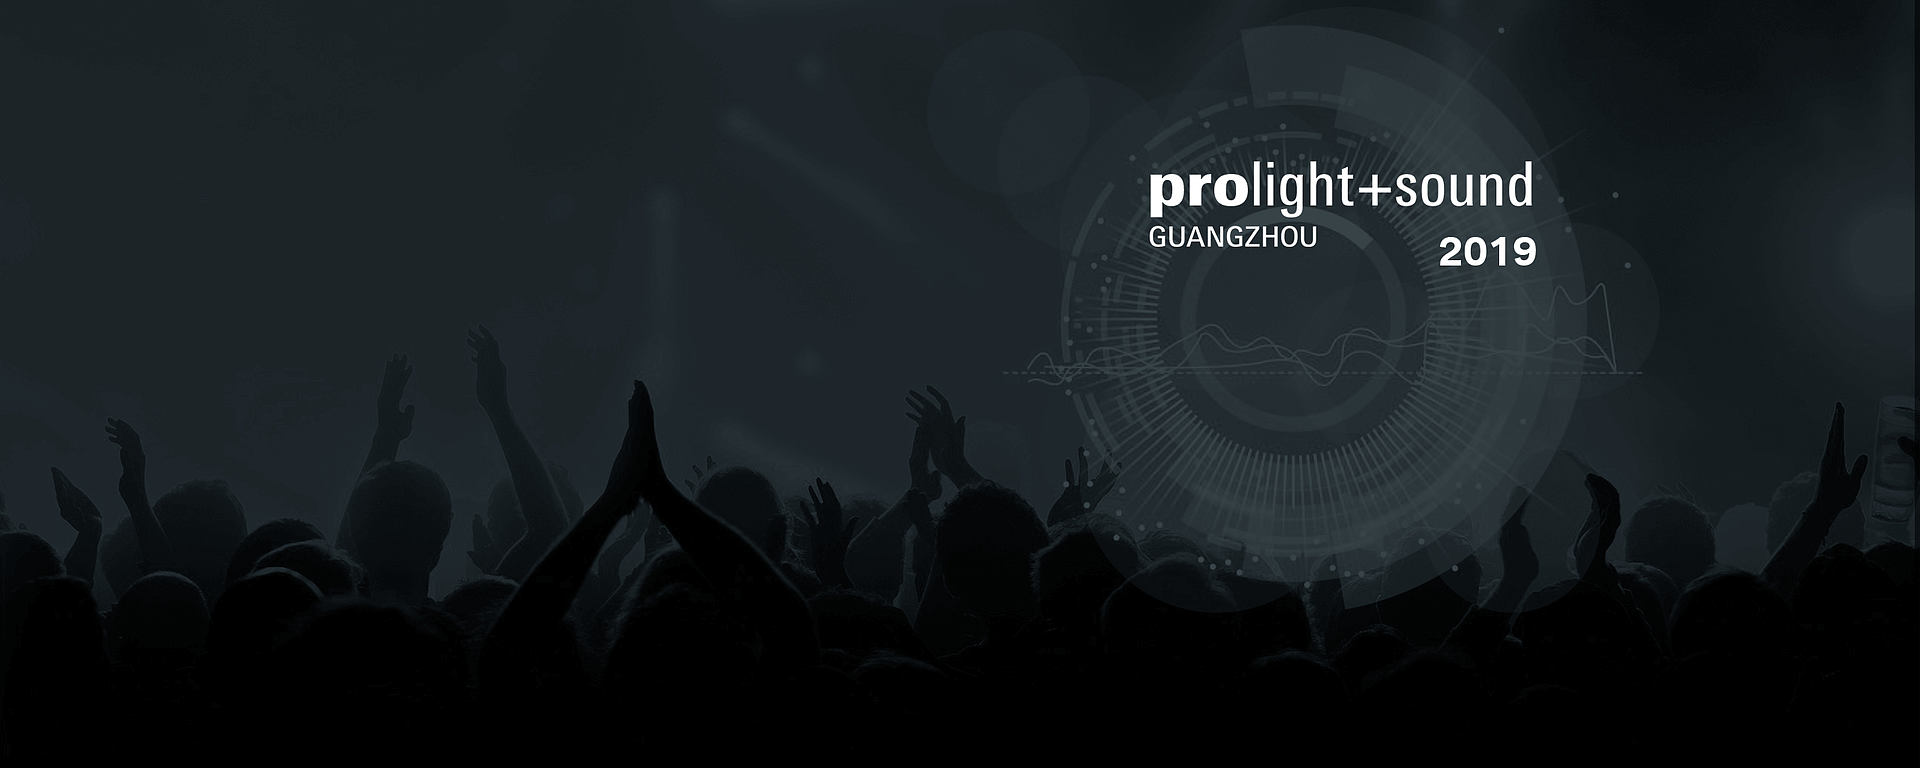 LEWITT at PRO LIGHT + SOUND Guangzhou 2019